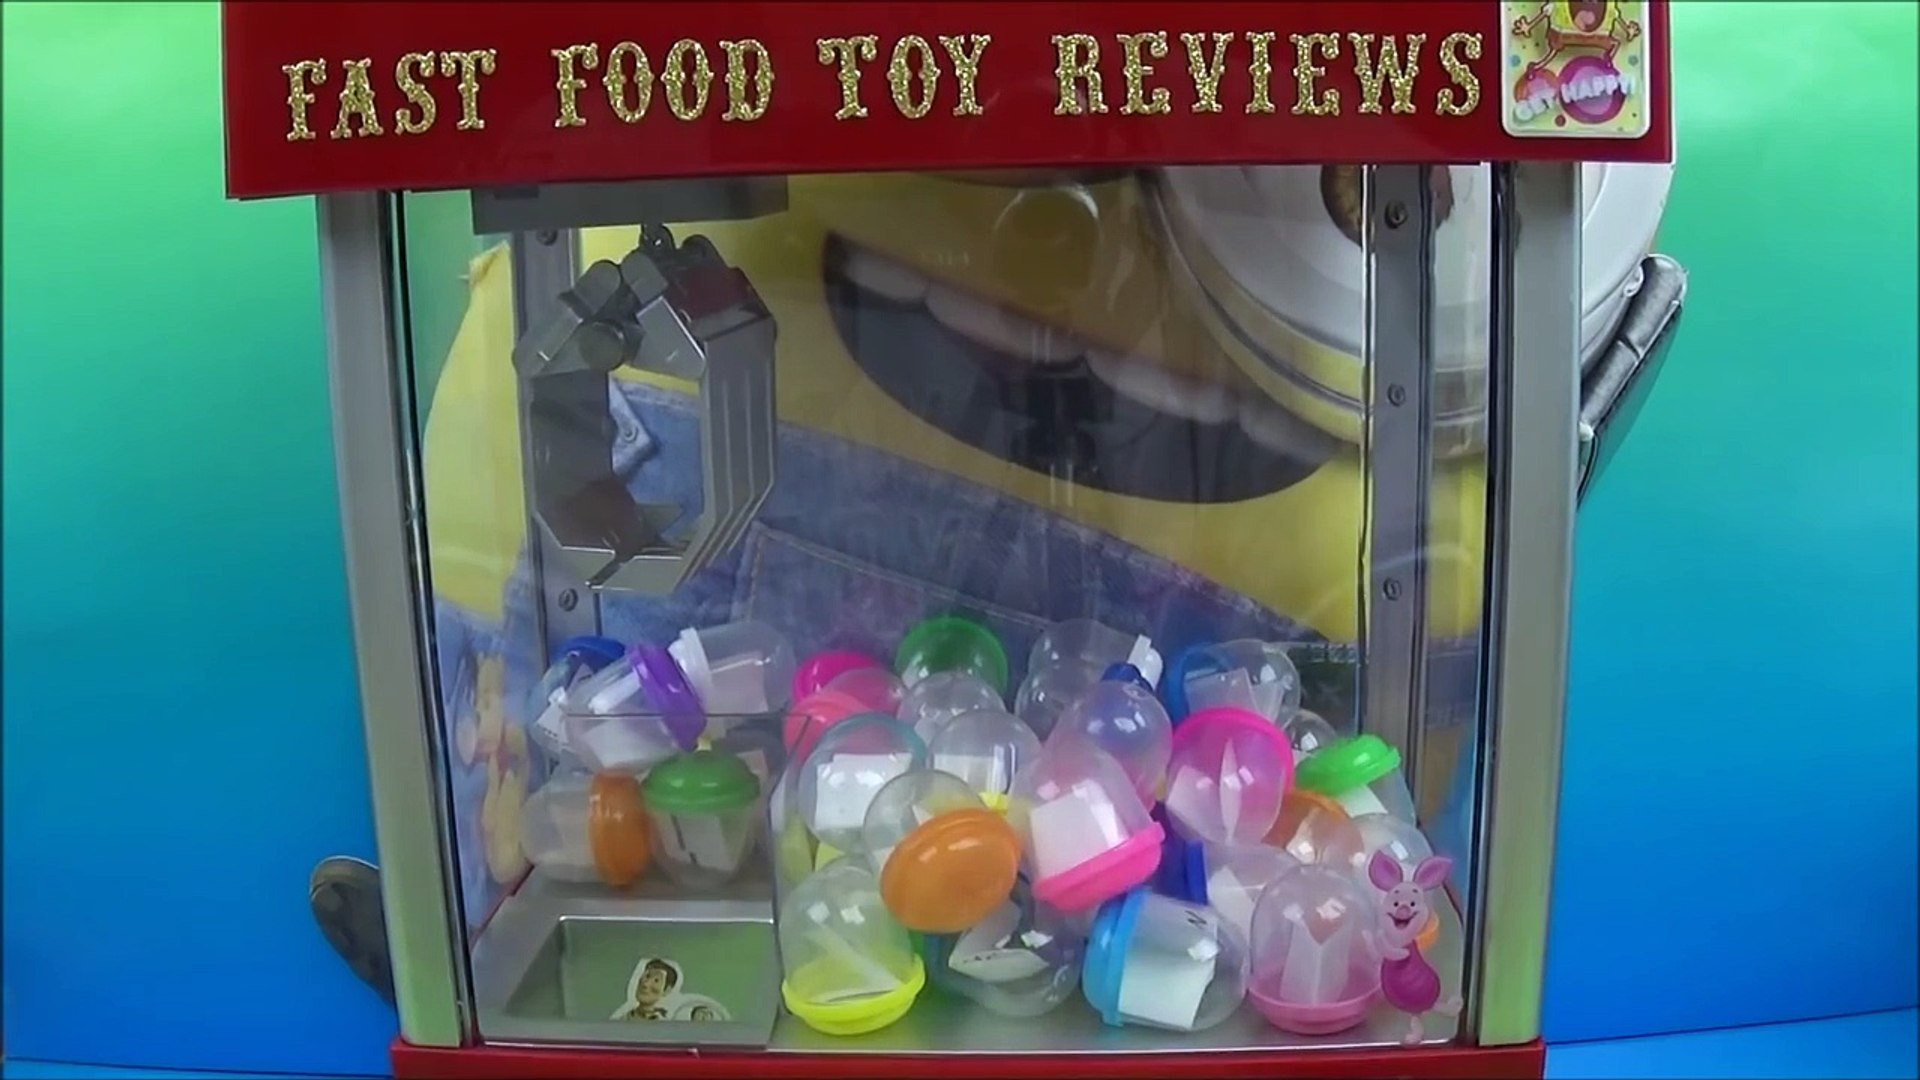 The Mystery Claw Machine By Fastfoodtoyreviews Episode 1 Video